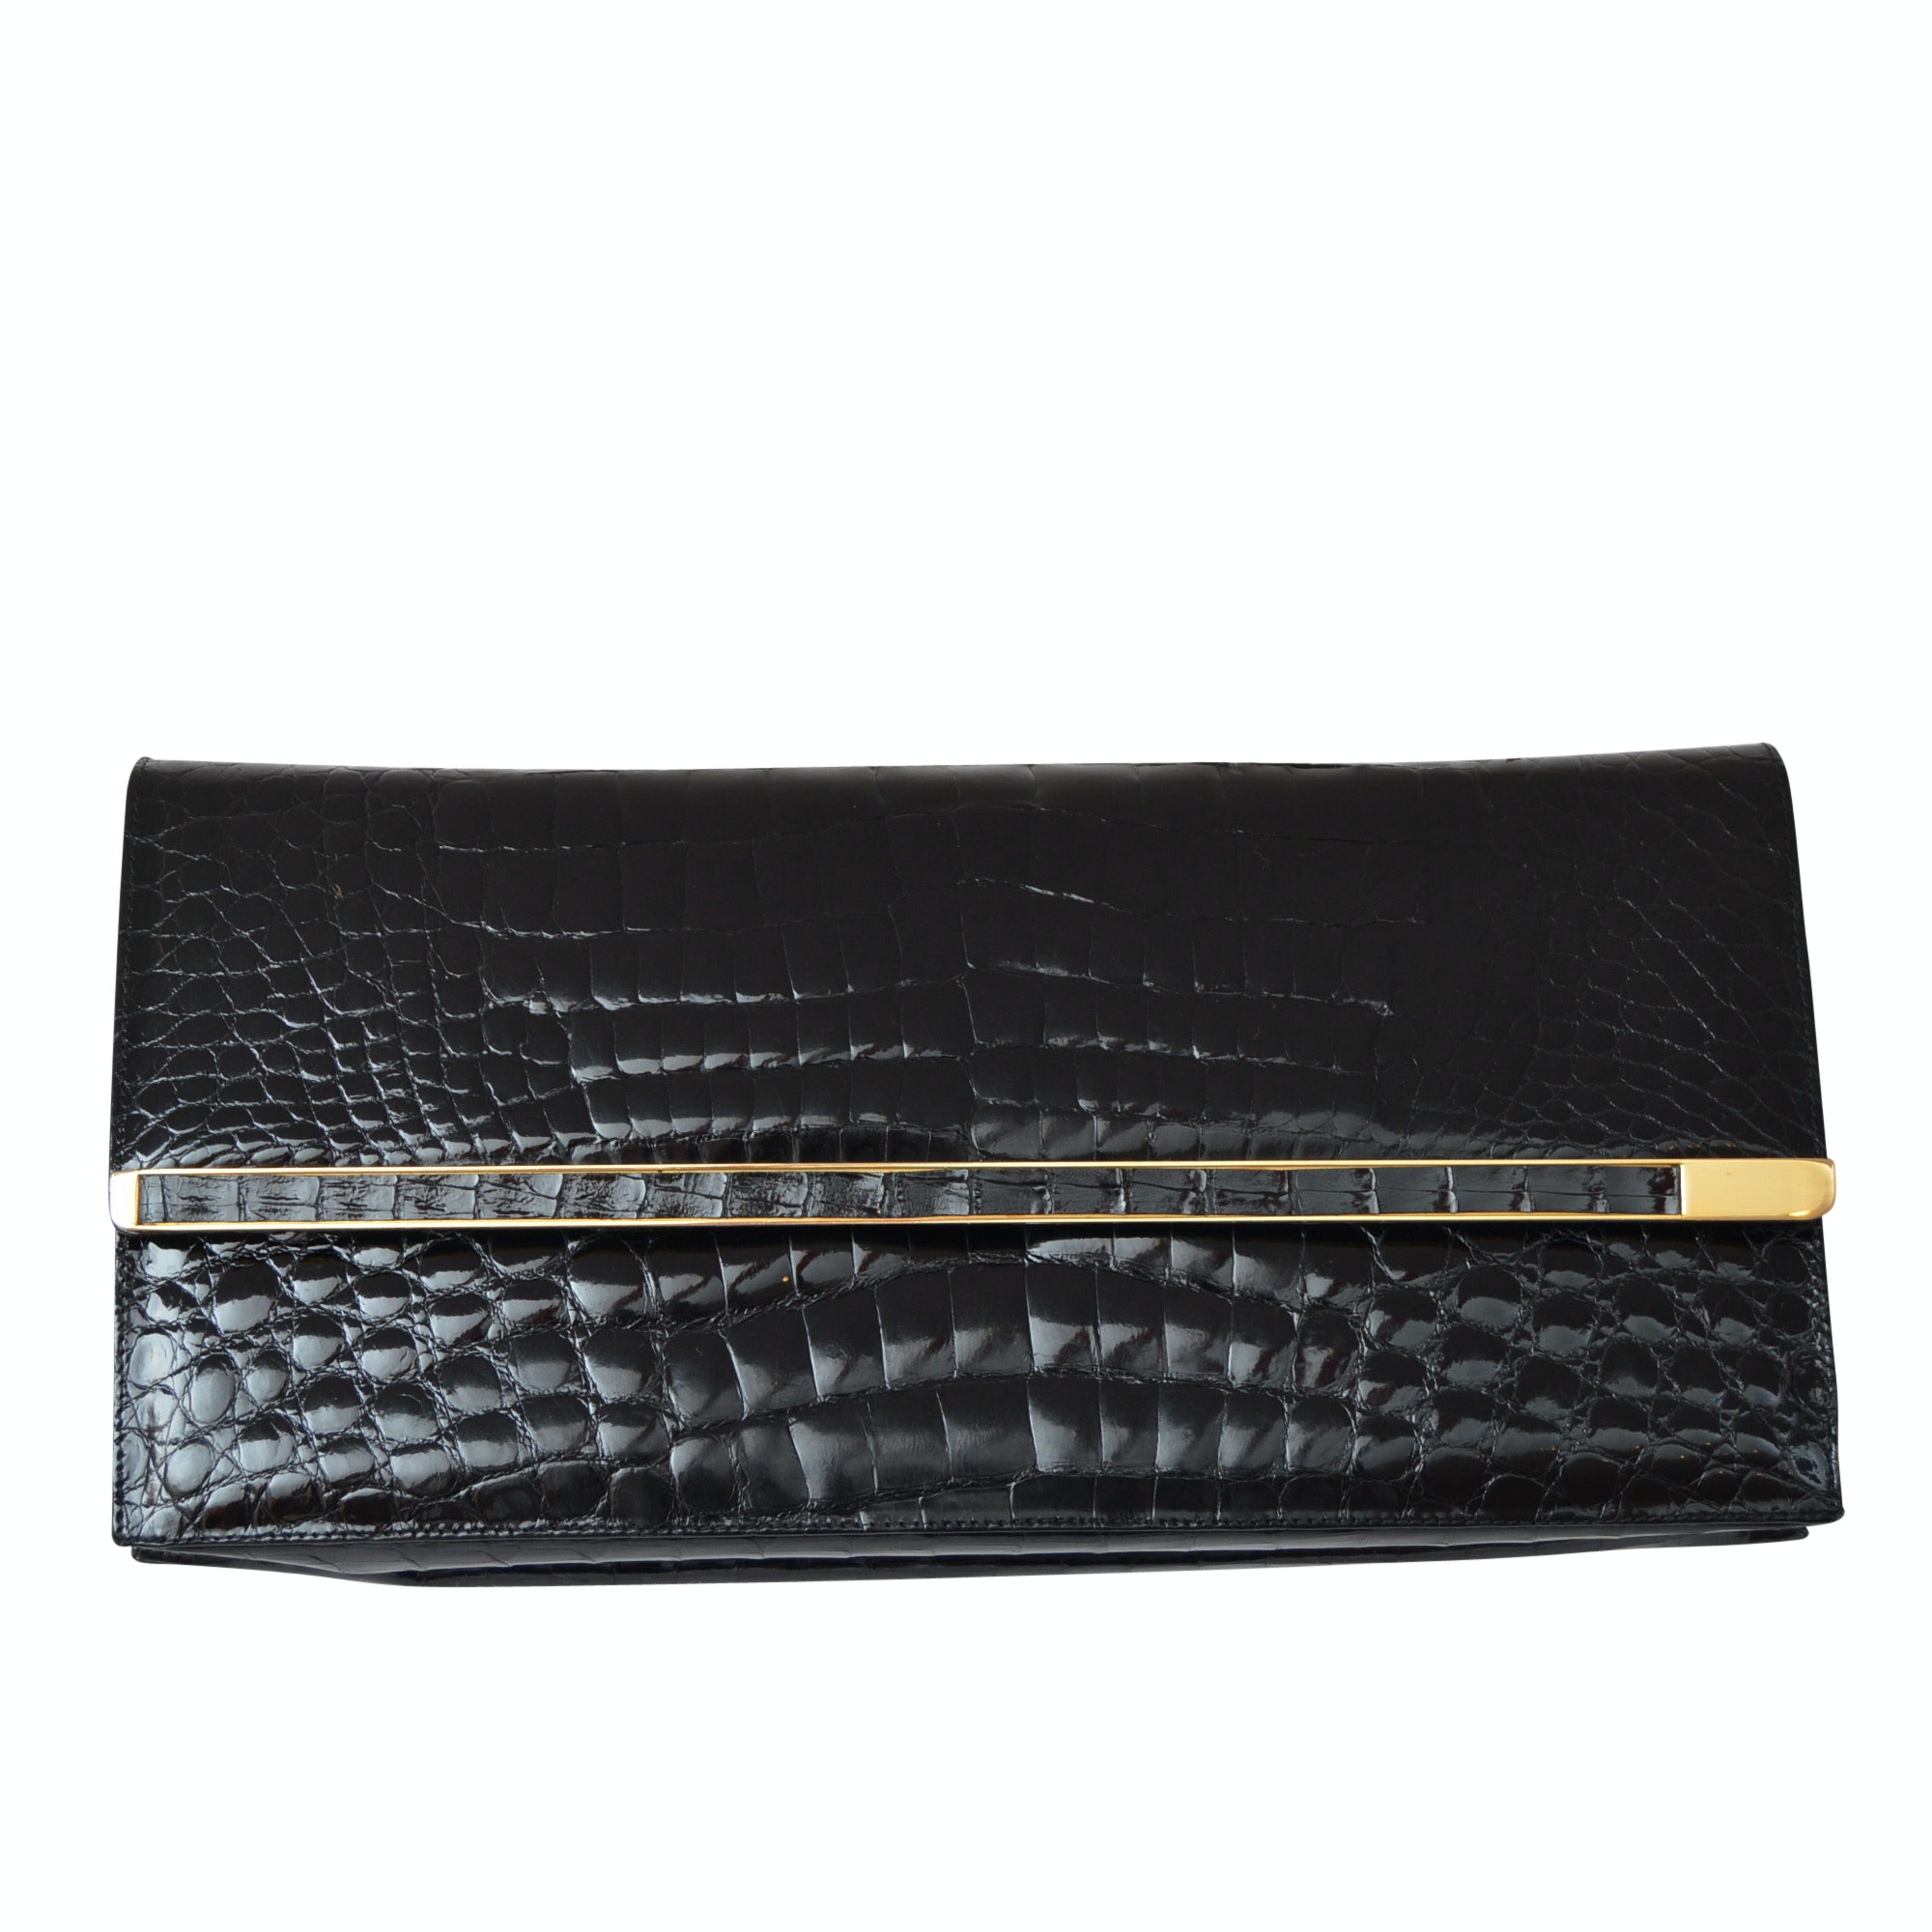 Susan of London Croc-Embossed Black Patent Leather Clutch Handbag